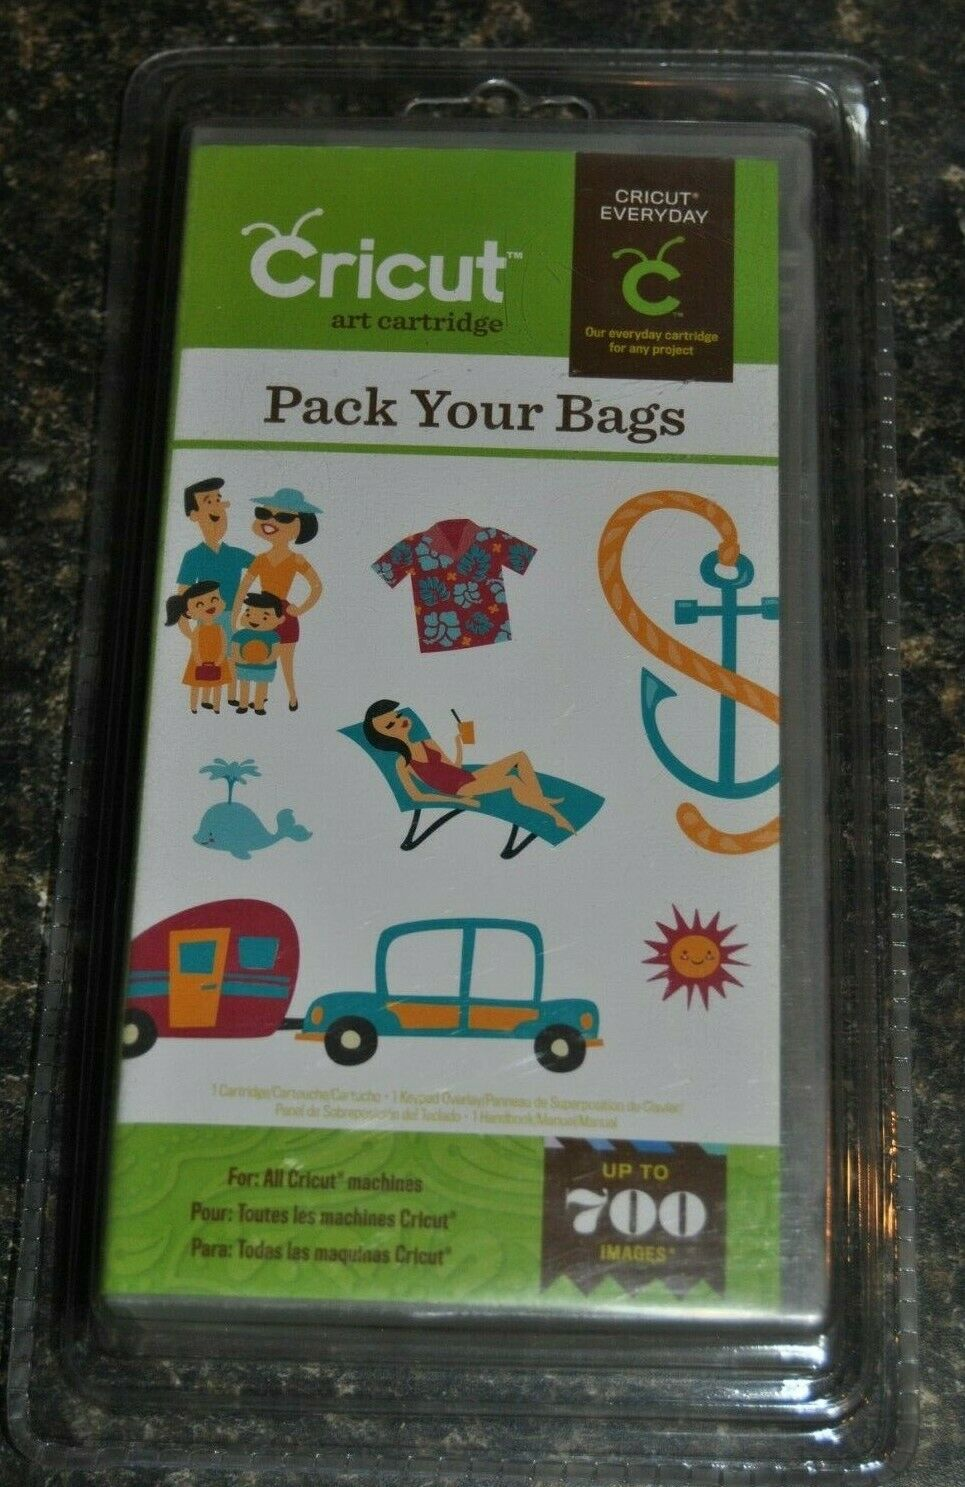 Cricut Cartridge PACK YOUR BAGS Brand New